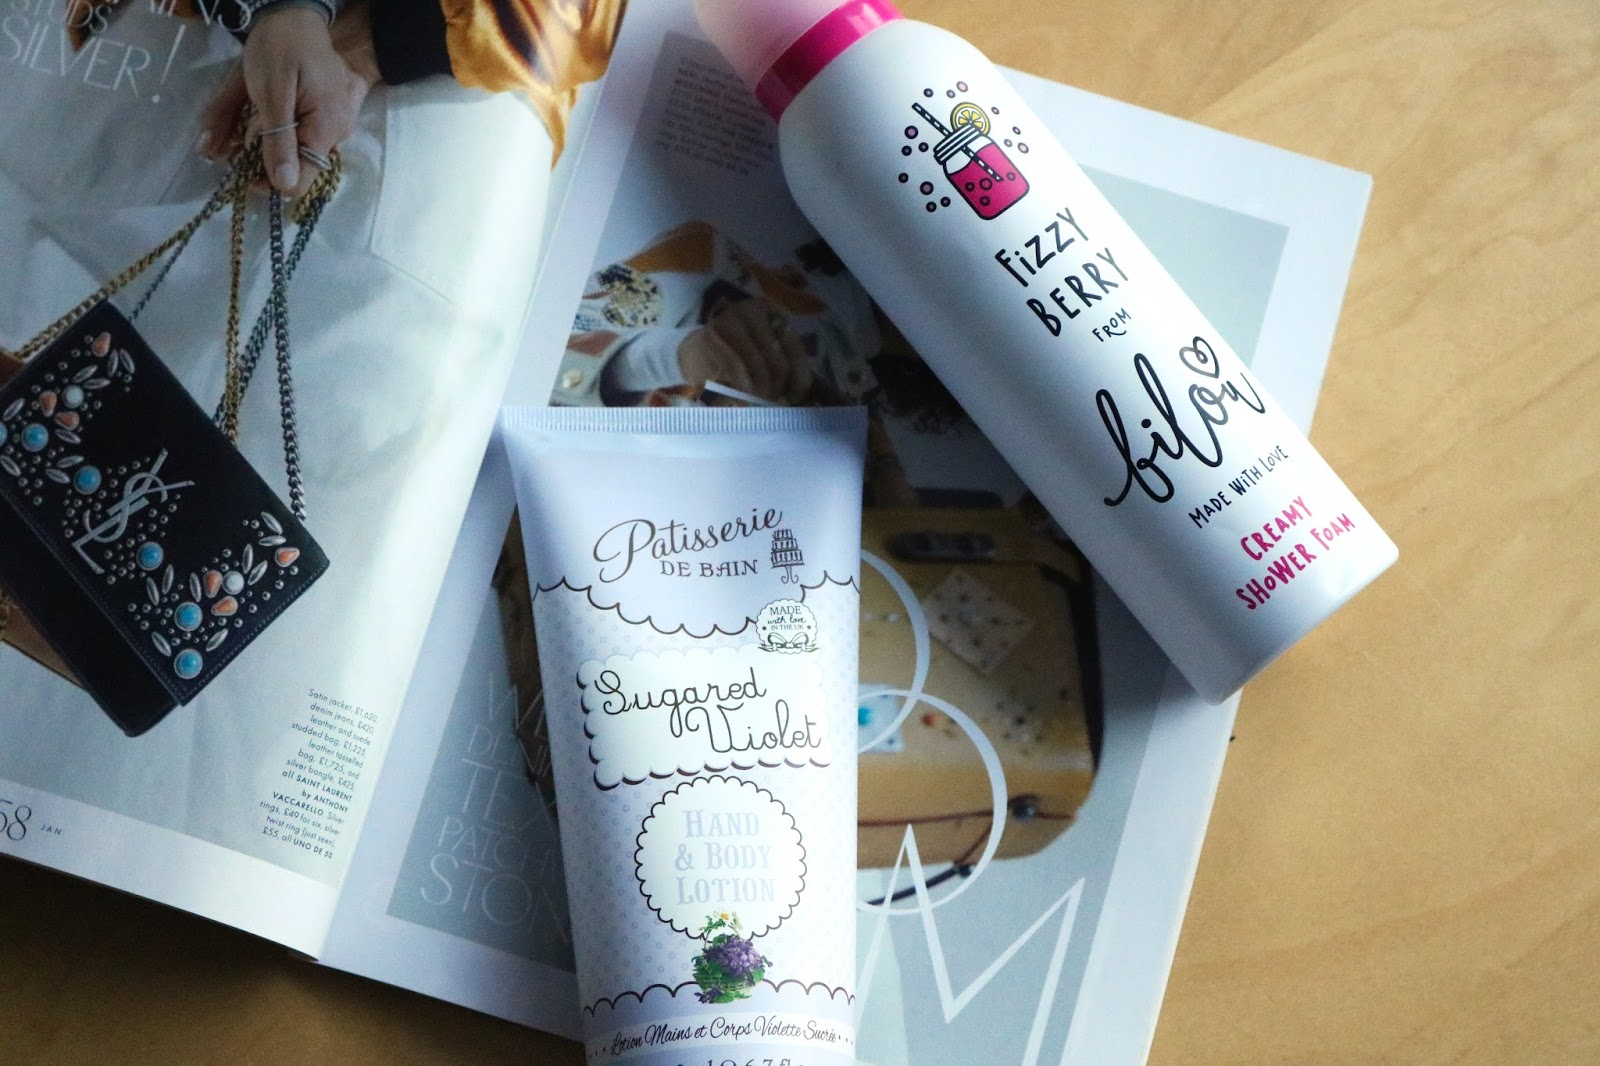 bilou fizzy berry creamy shower foam and patisserie de bain sugared violets hand and body lotion